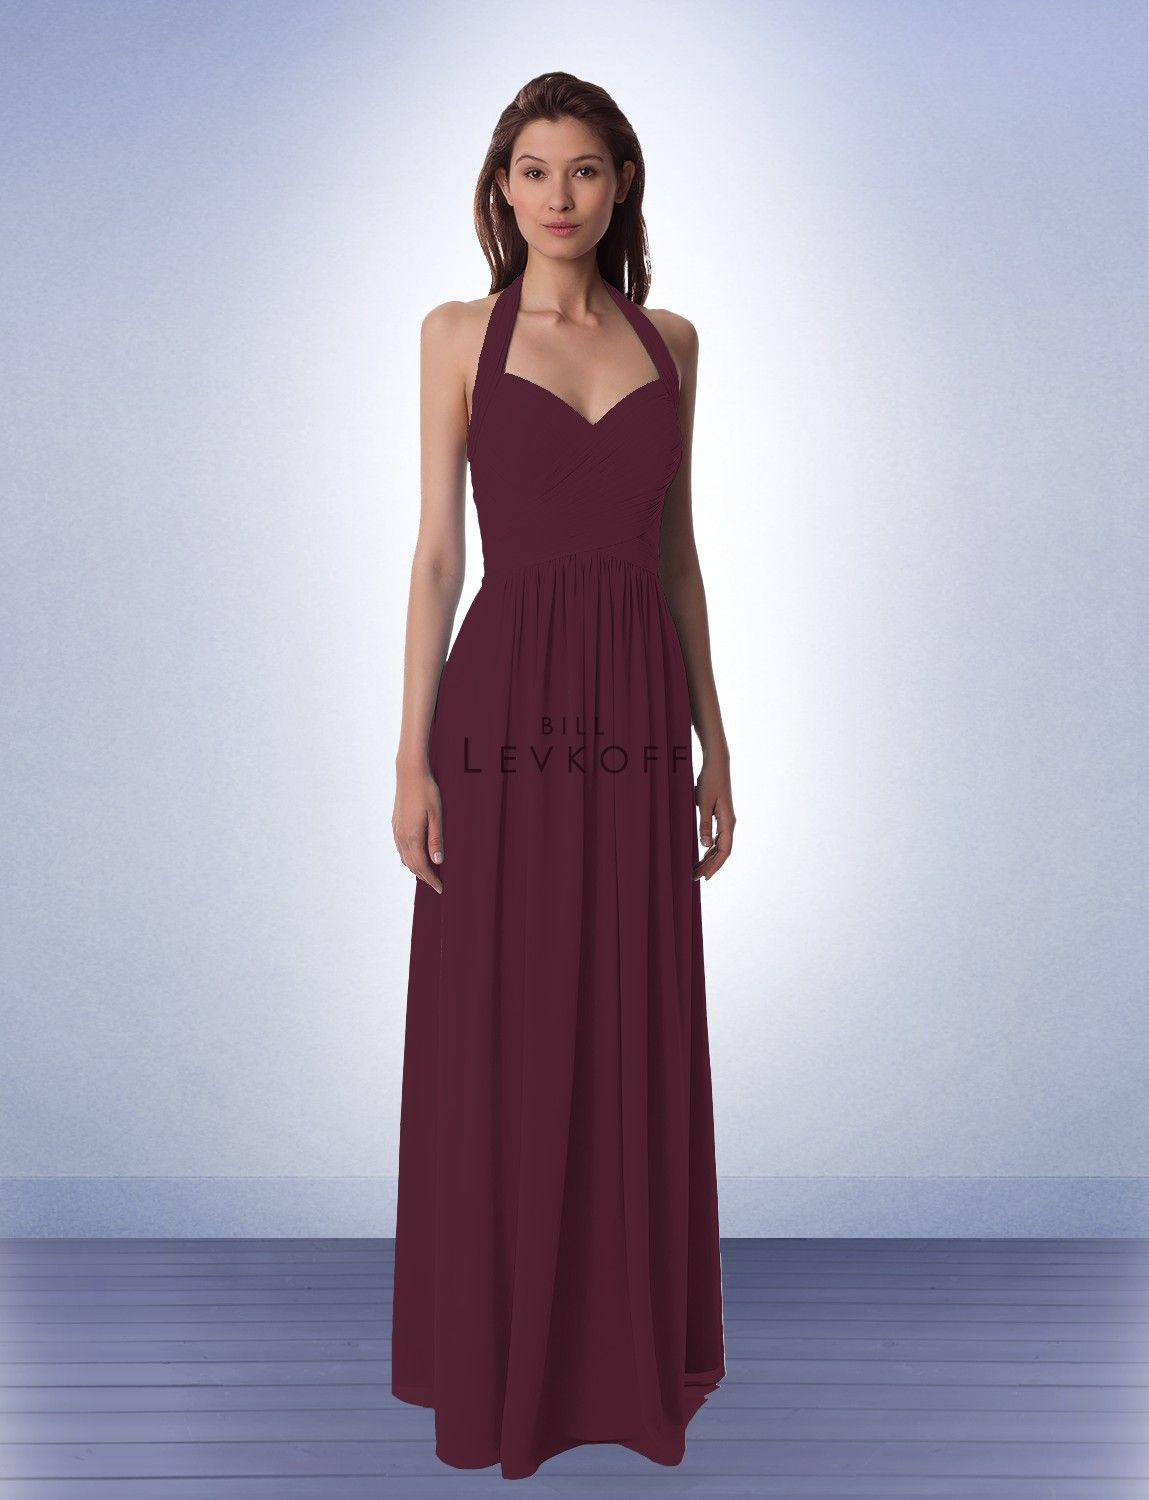 Completed bridesmaid dress style 990 bridesmaid dresses by completed bridesmaid dress style 990 bridesmaid dresses by bill levkoff in wine ombrellifo Image collections